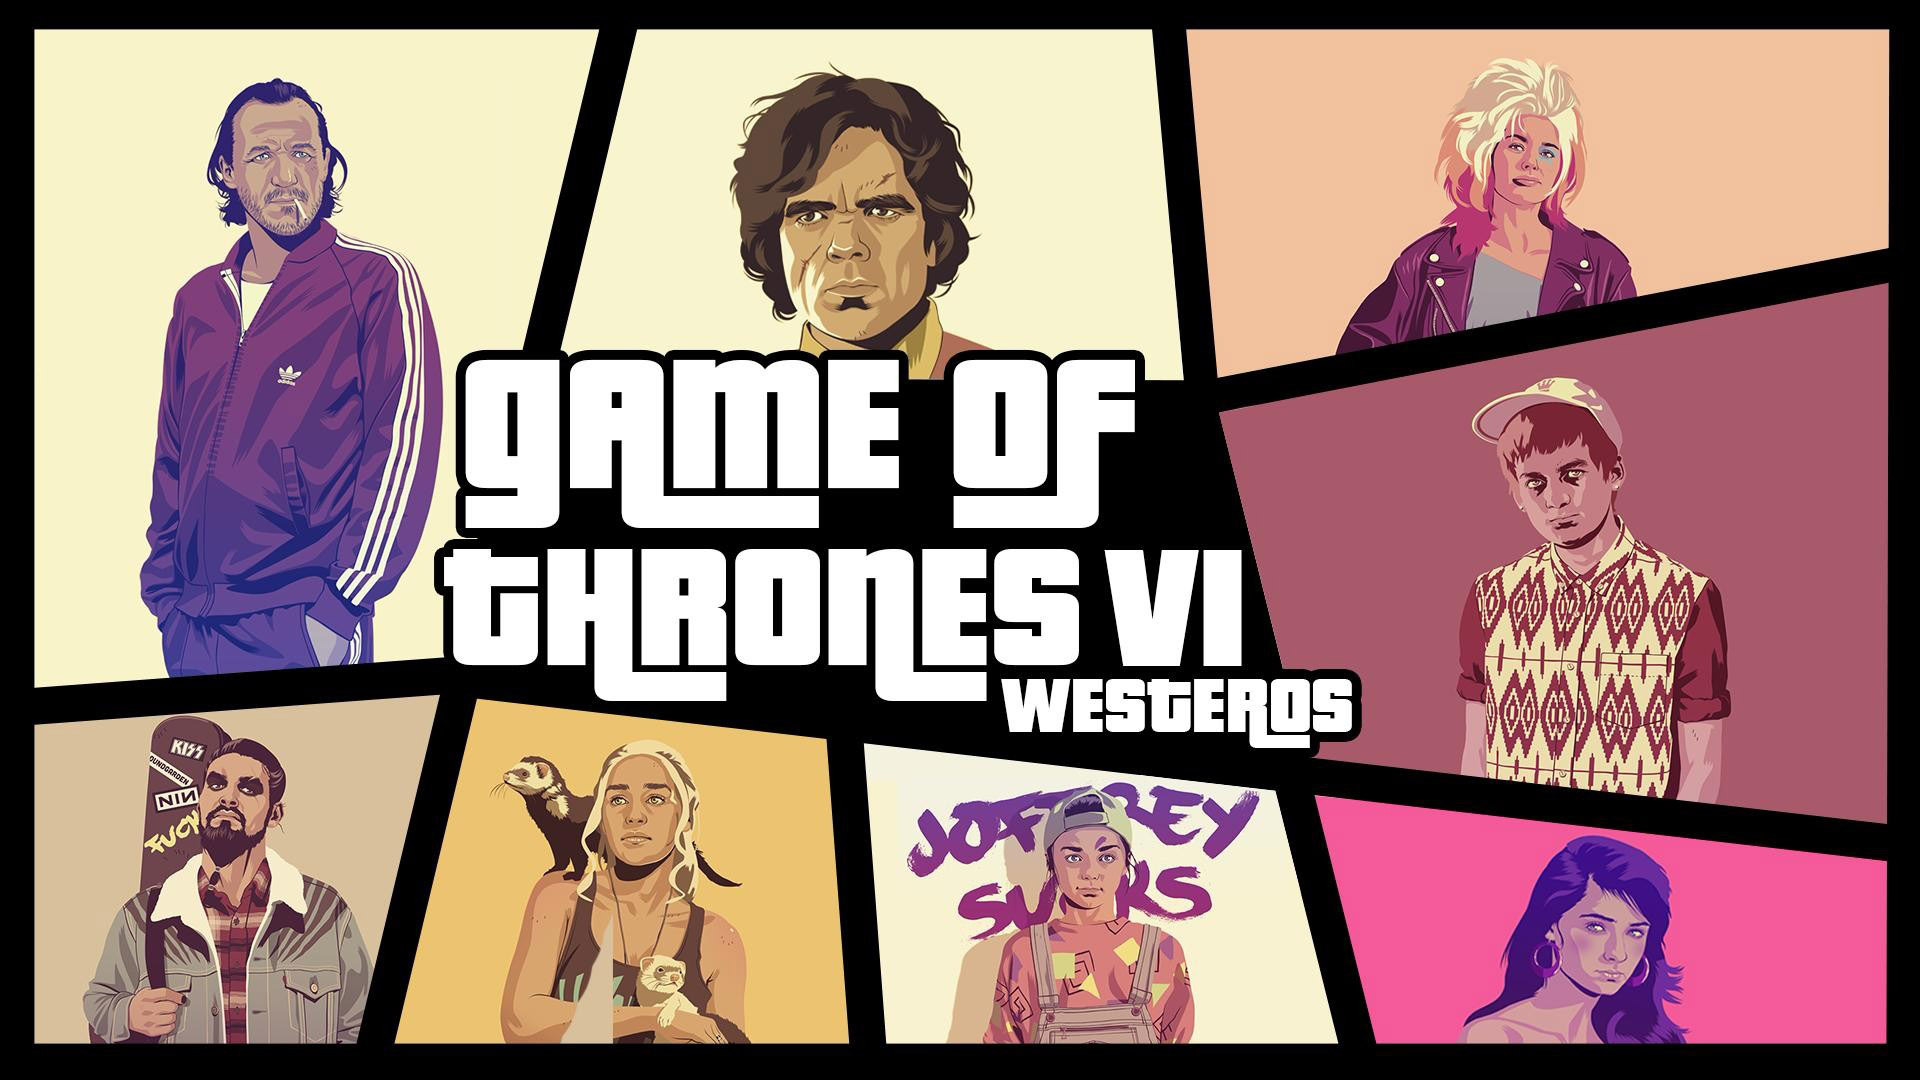 Game of Thrones GTA crossover